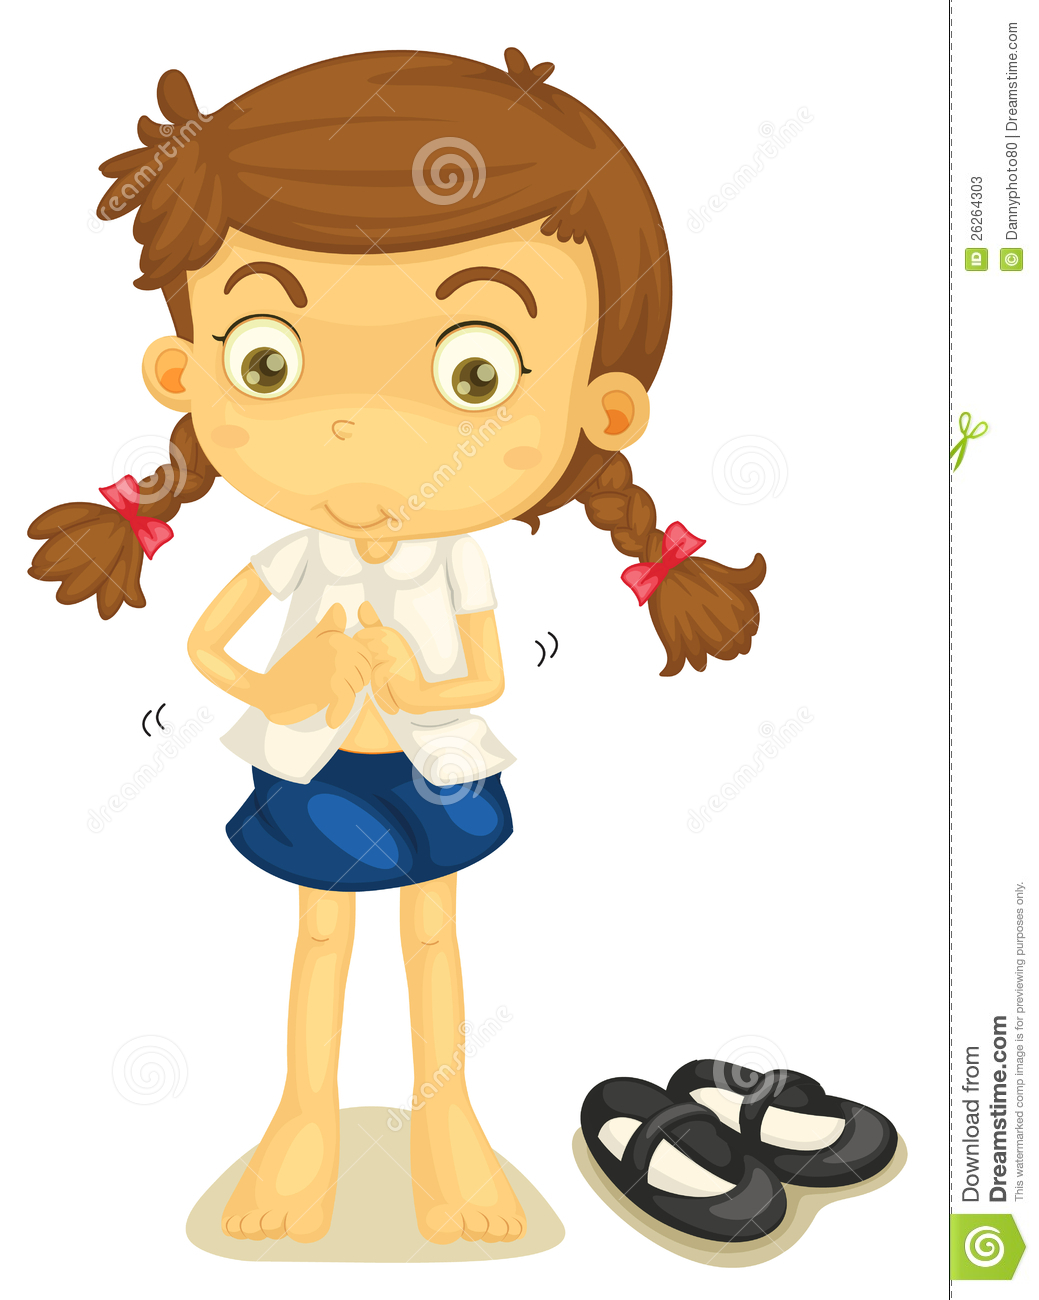 a girl in school uniform stock vector illustration of girl getting dressed clipart child getting dressed clipart